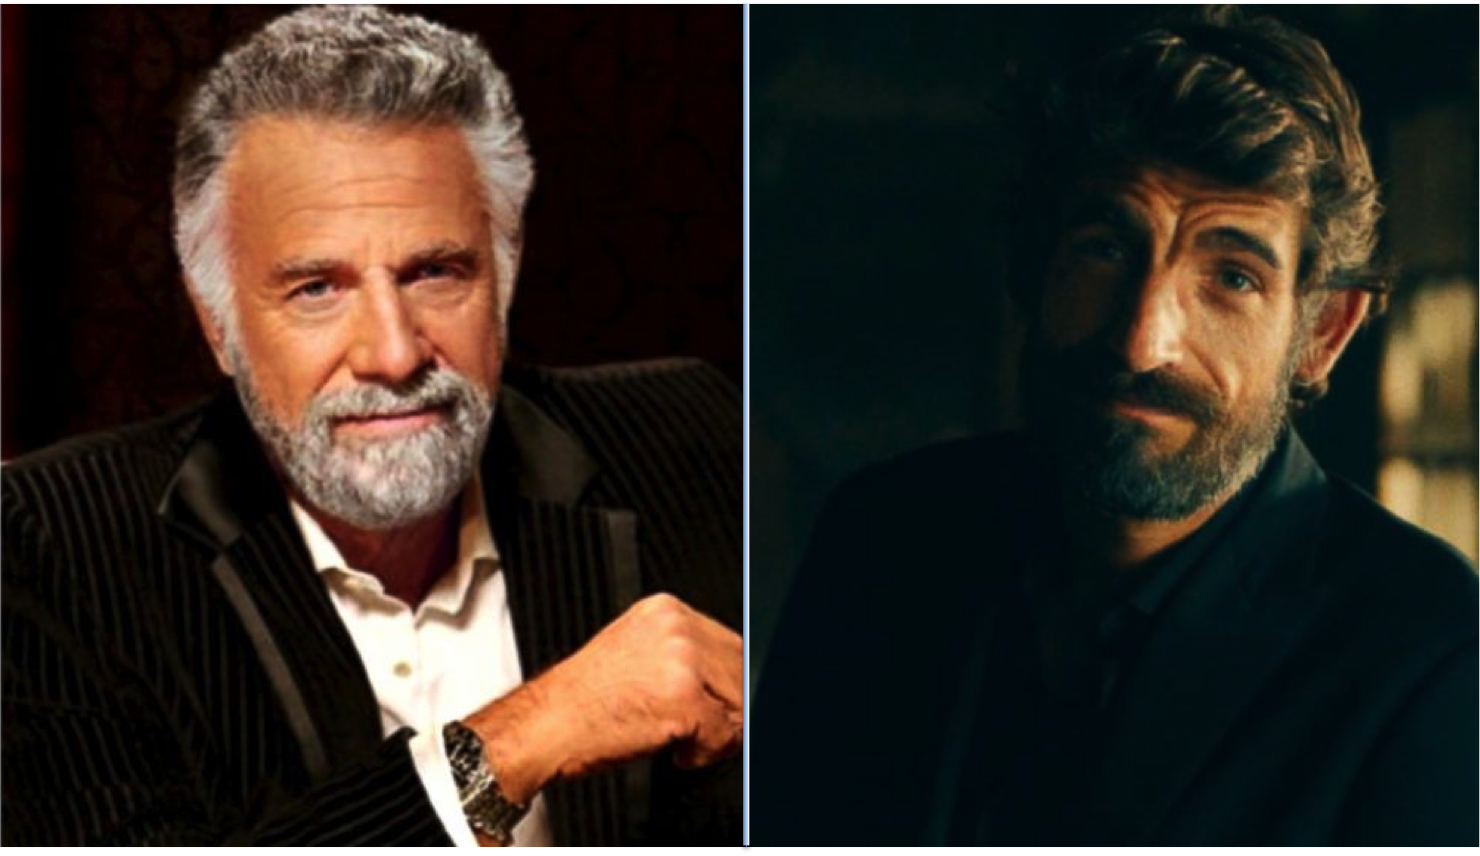 Michael phelps dos equis